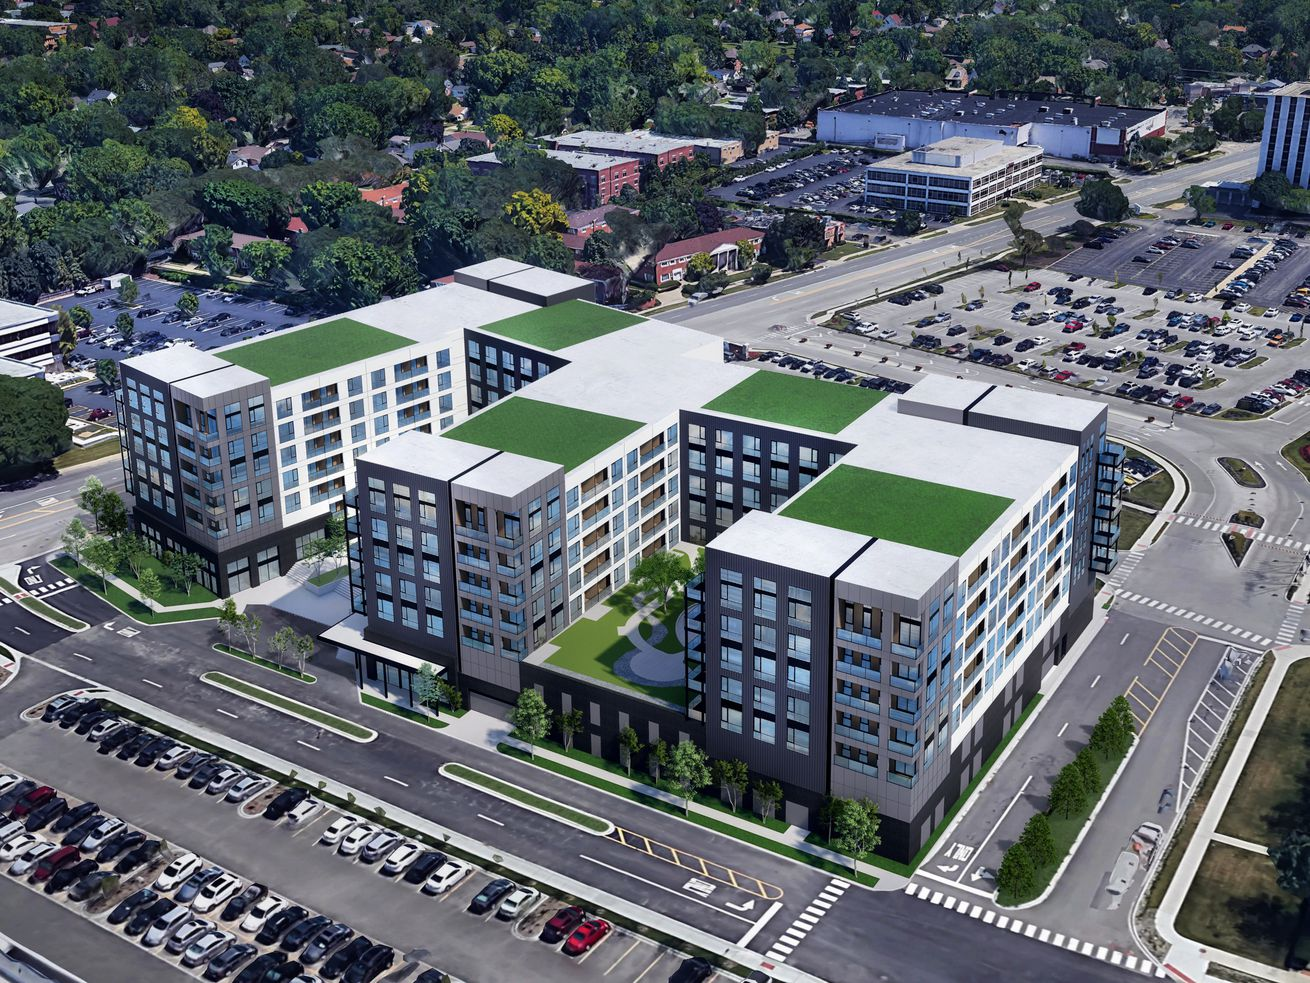 A rendering shows a view looking northeast of the building proposed for 8535 W. Higgins Road. The design is by FitzGerald Associates.